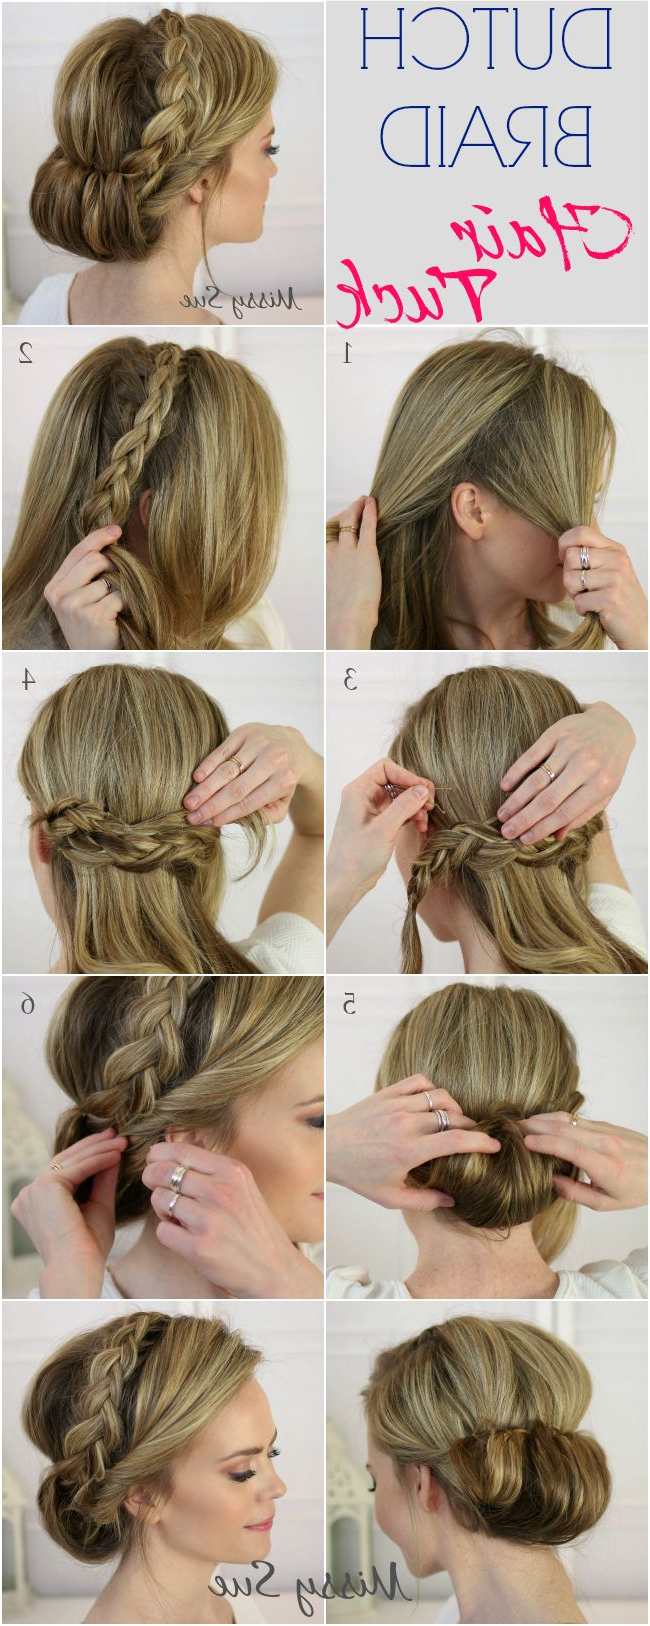 Latest Braid Hairstyles With Headband In 17 Stunning Dutch Braid Hairstyles With Tutorials – Pretty (Gallery 8 of 20)